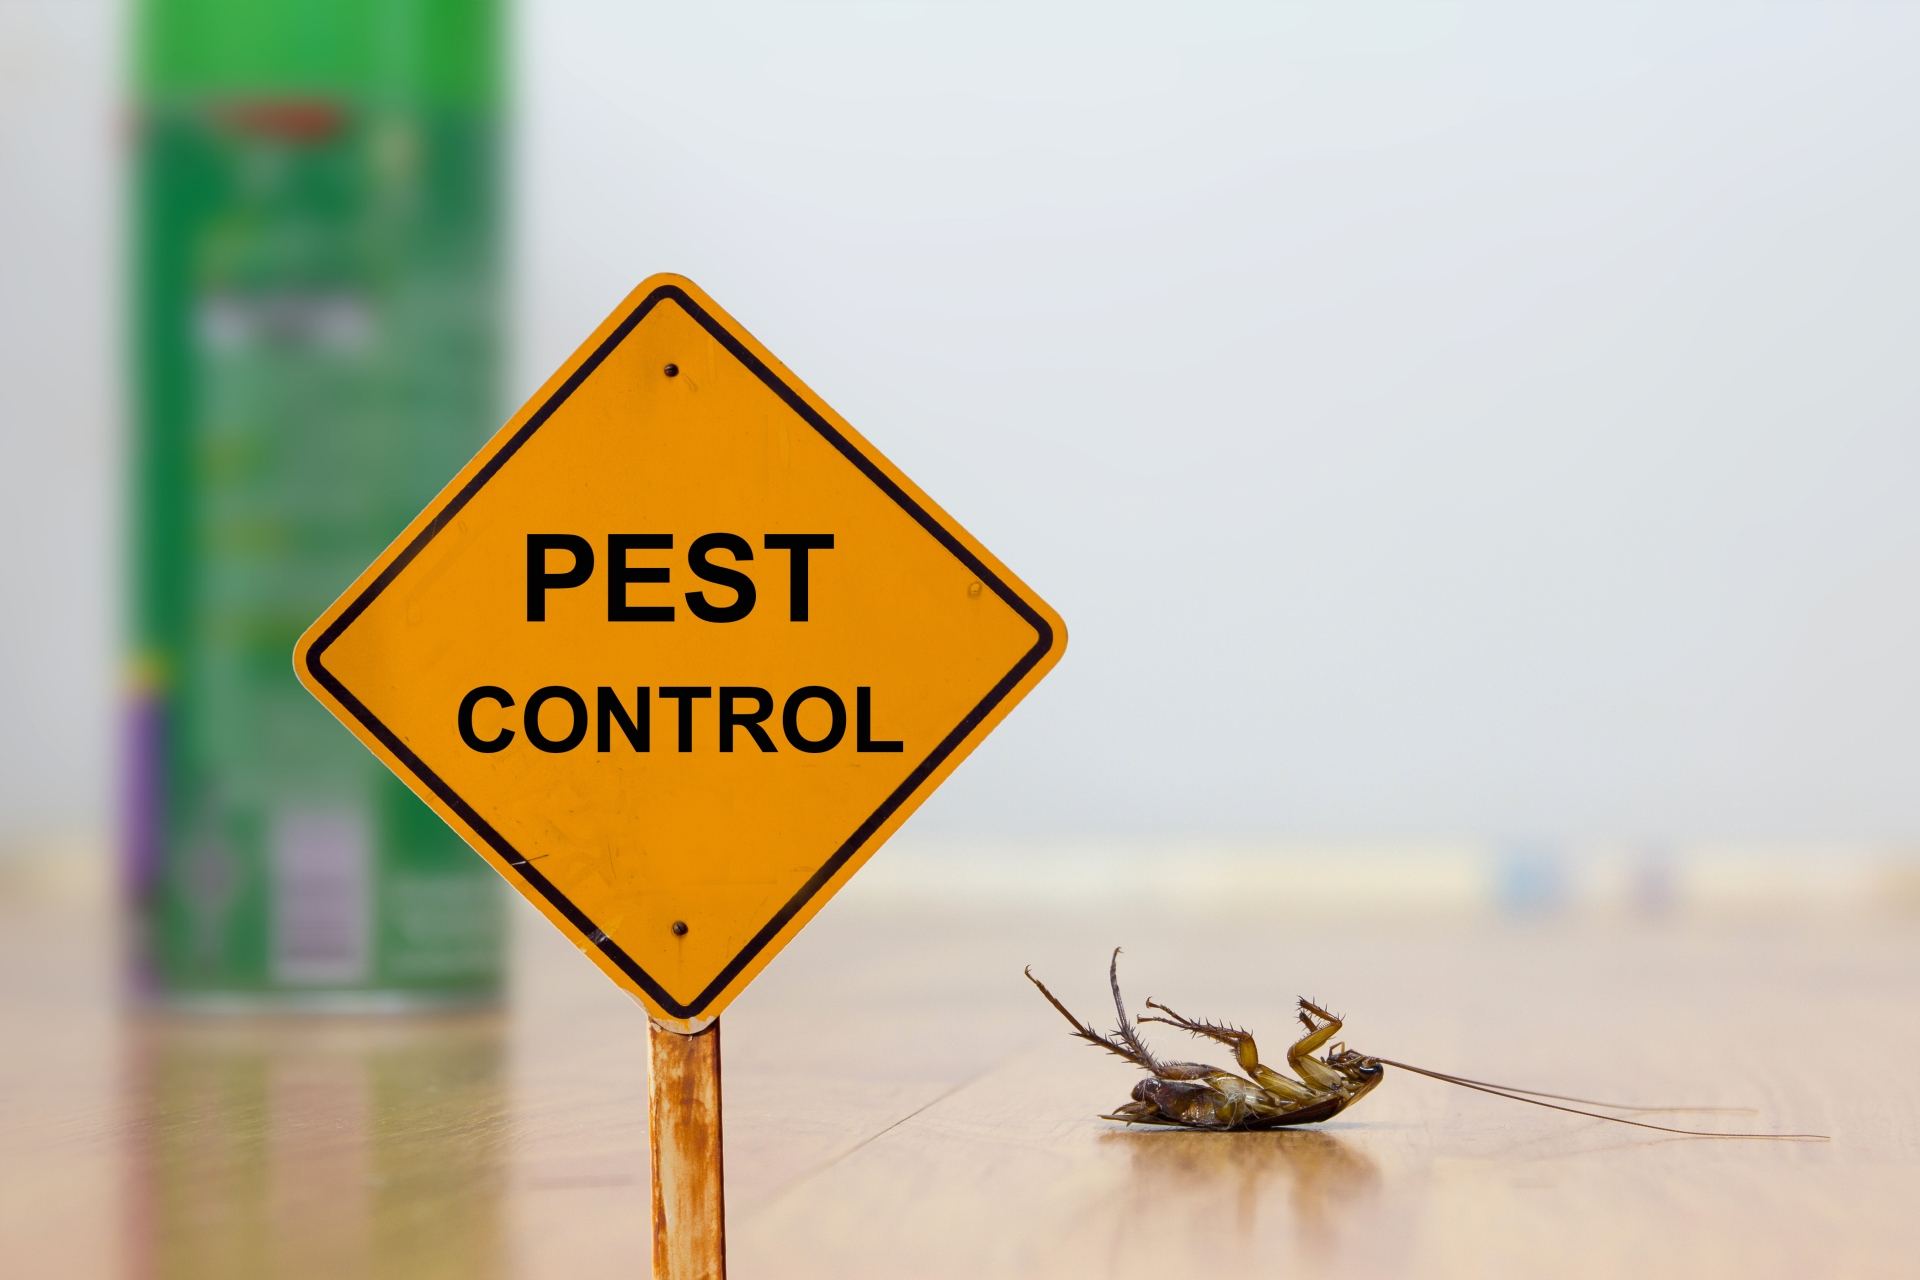 24 Hour Pest Control, Pest Control in Leatherhead, Oxshott, Fetcham, KT22. Call Now 020 8166 9746